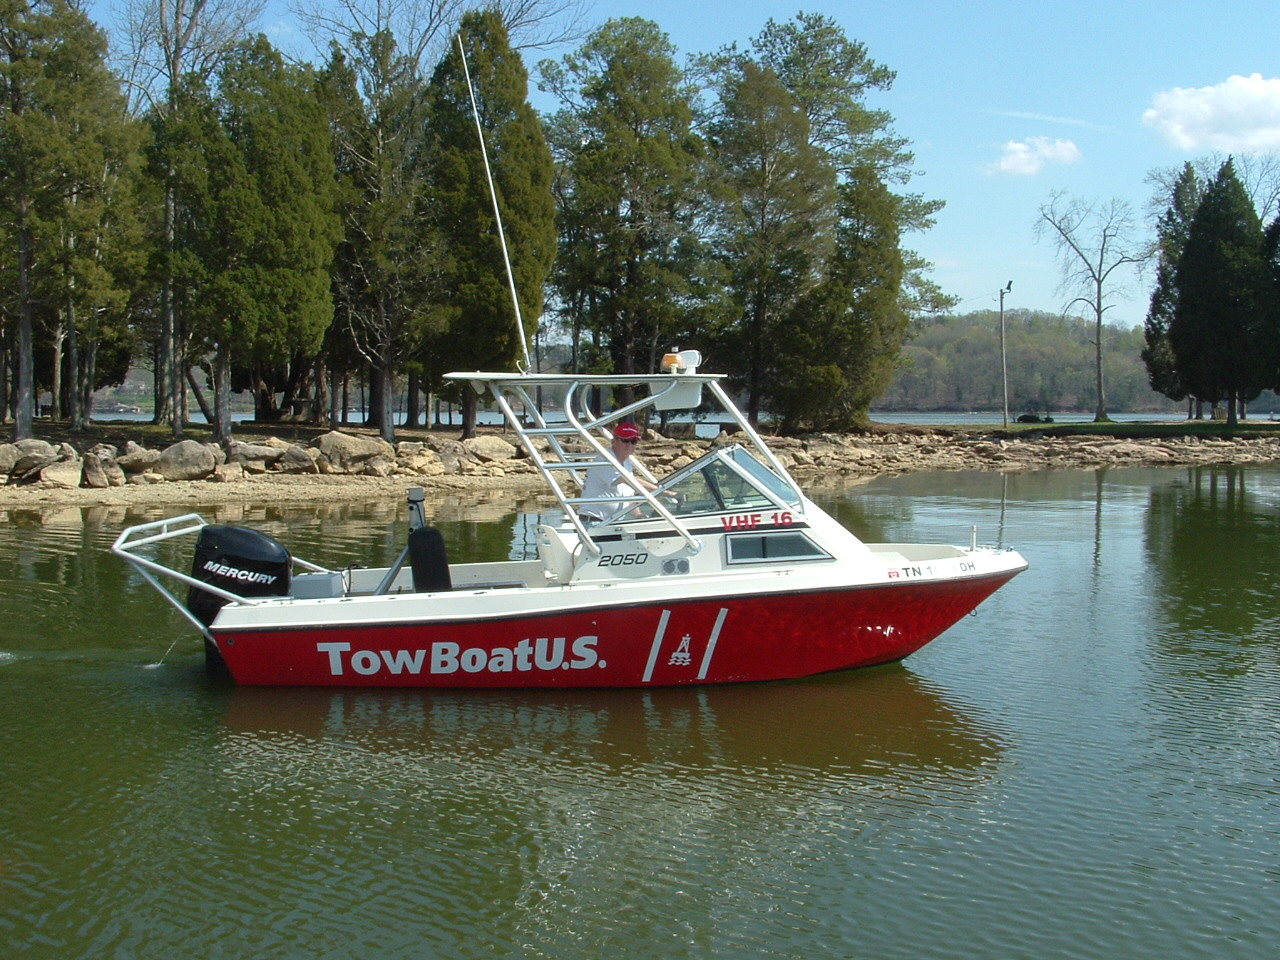 The BoatUS Foundation for Boating Safety and Clean Water is an innovative leader promoting safe, clean and responsible boating. The Foundation provides educational outreach directly to boaters and supports partner organizations nationwide.